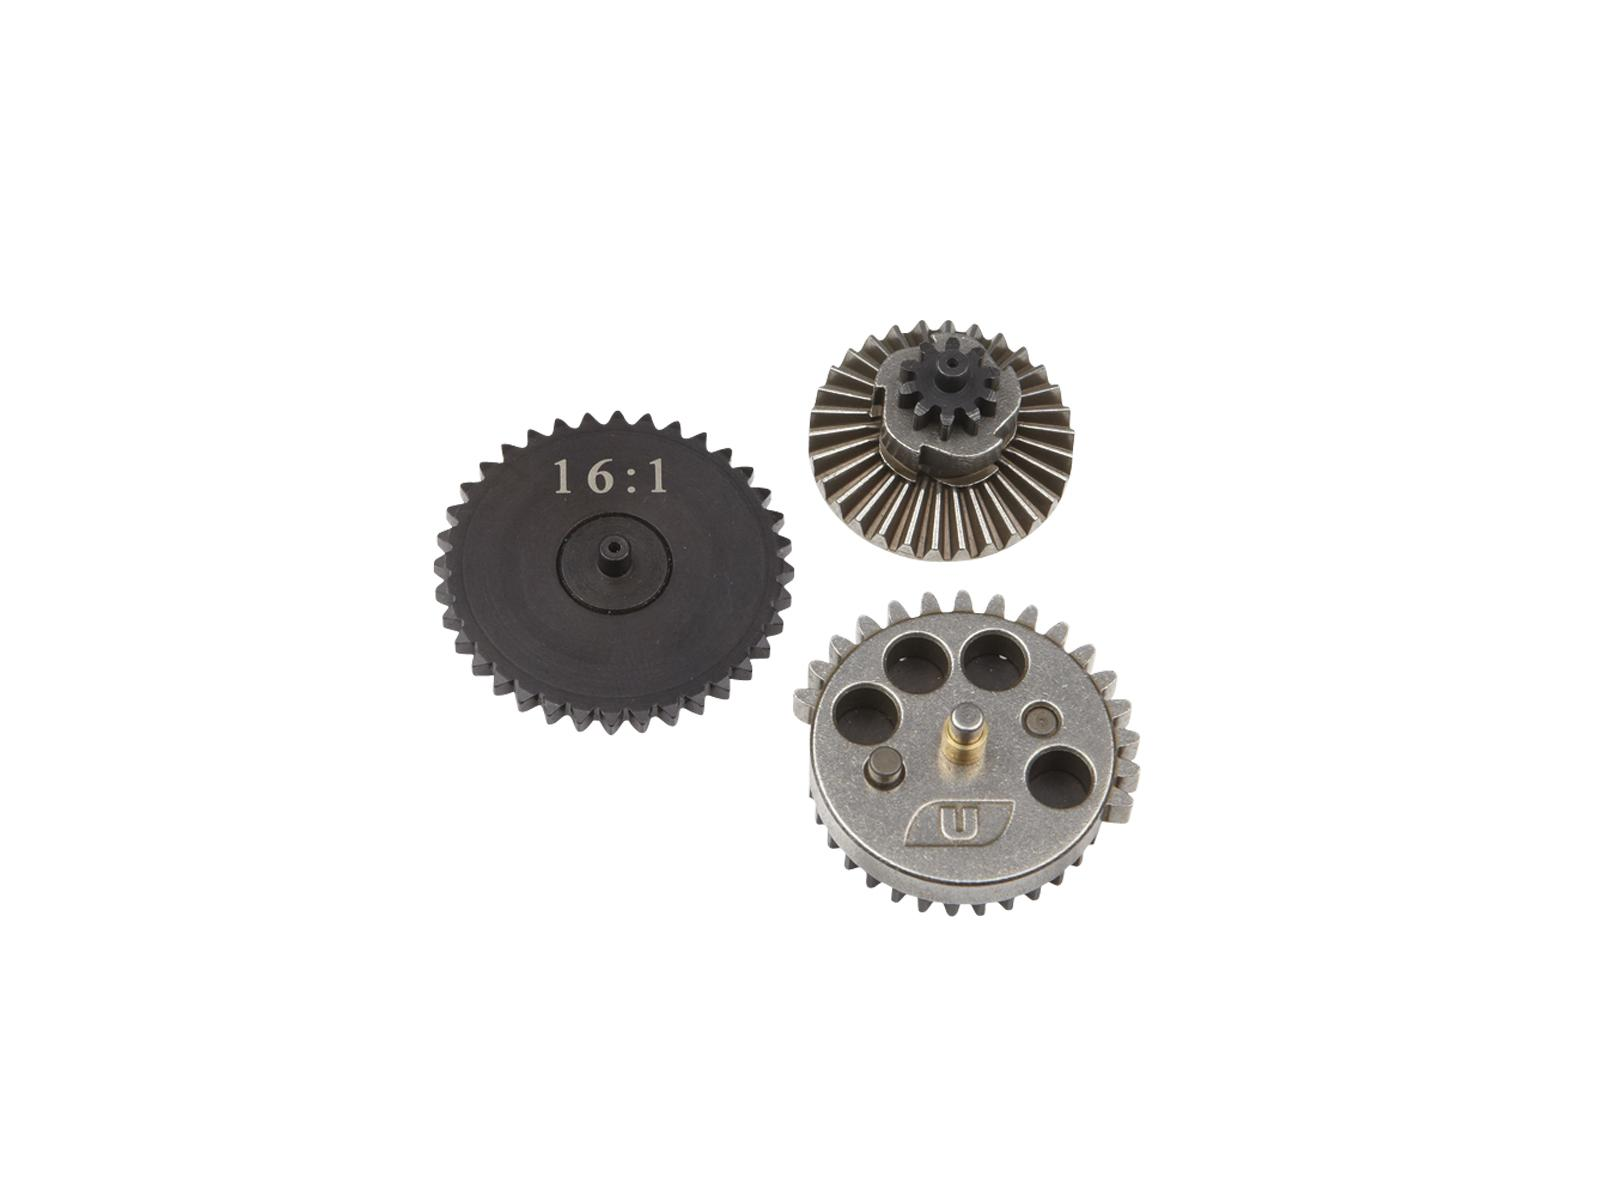 ASG High speed gears